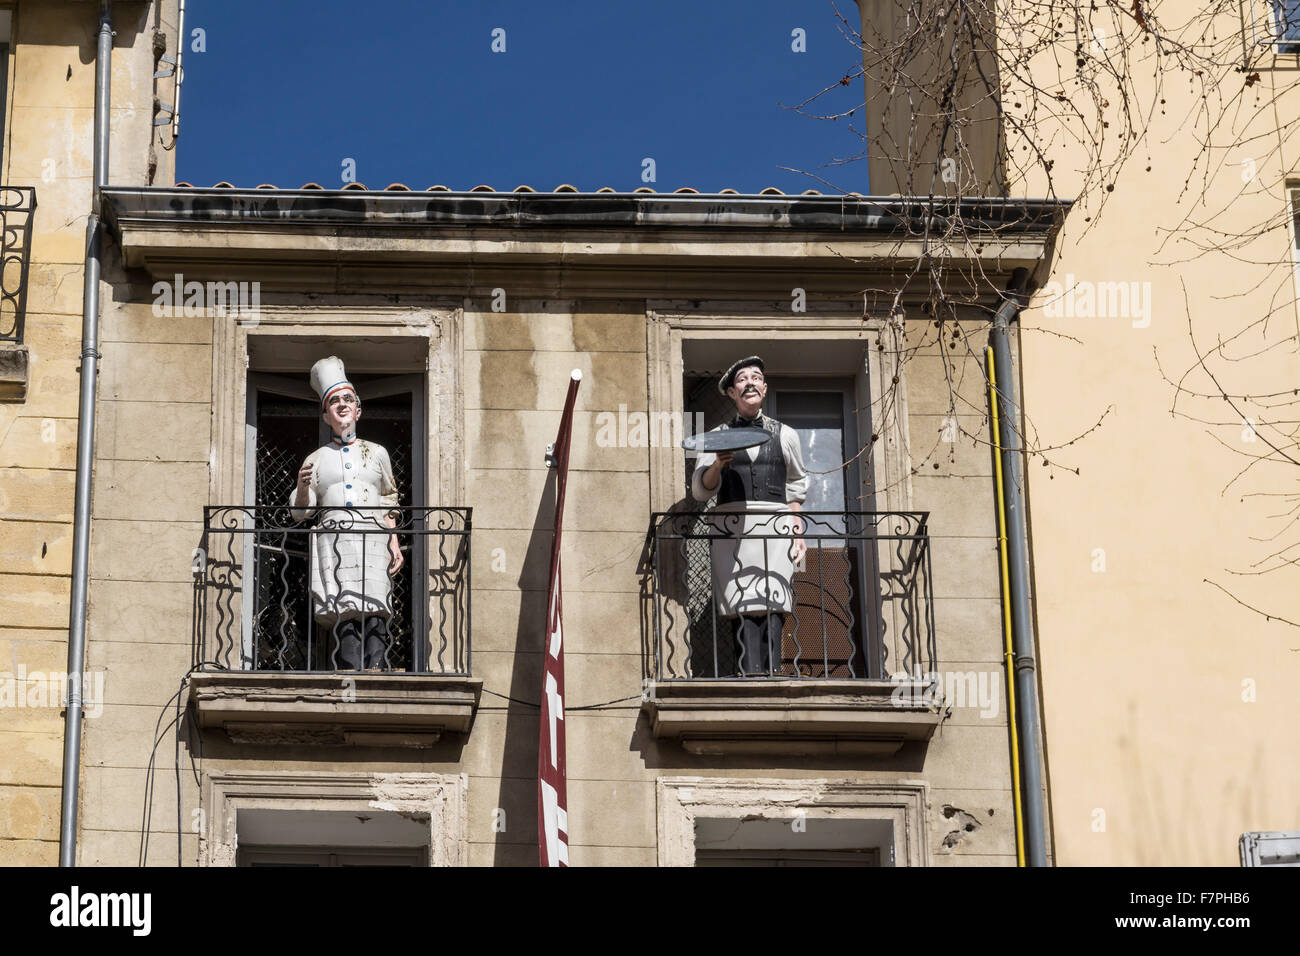 Cook and Waiter sculptures at Cours Mirabeau, Aix en Provence. Provence, France - Stock Image